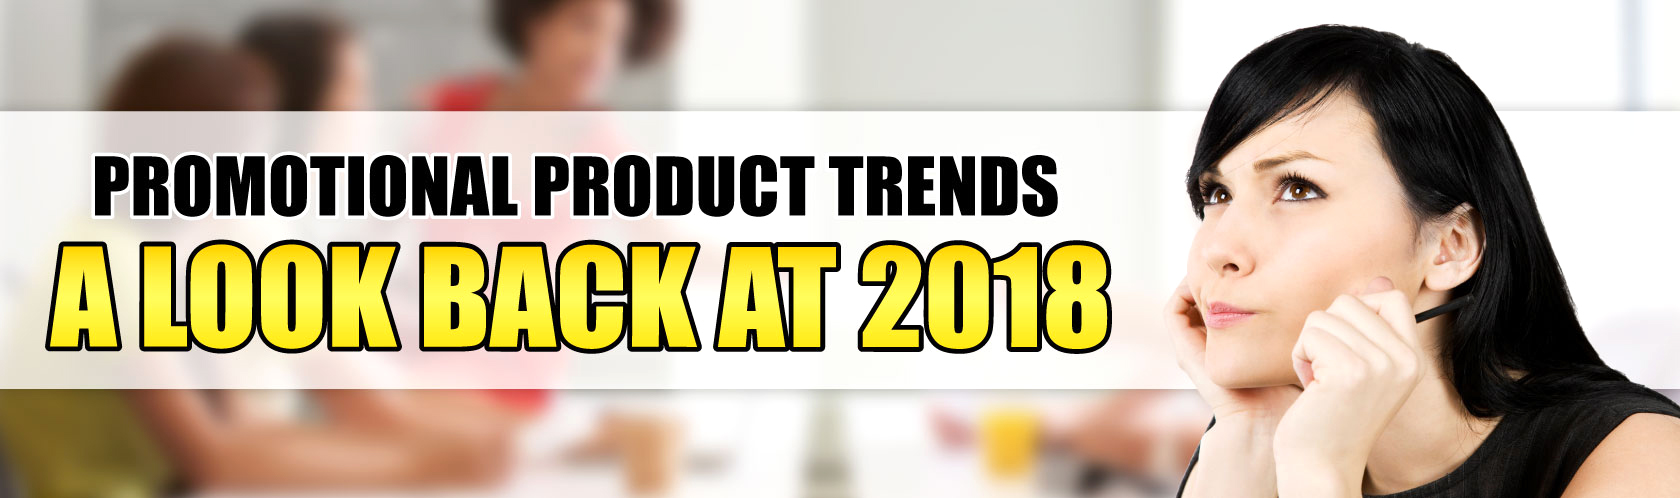 Promotional Product Trends: A Look Back at 2018